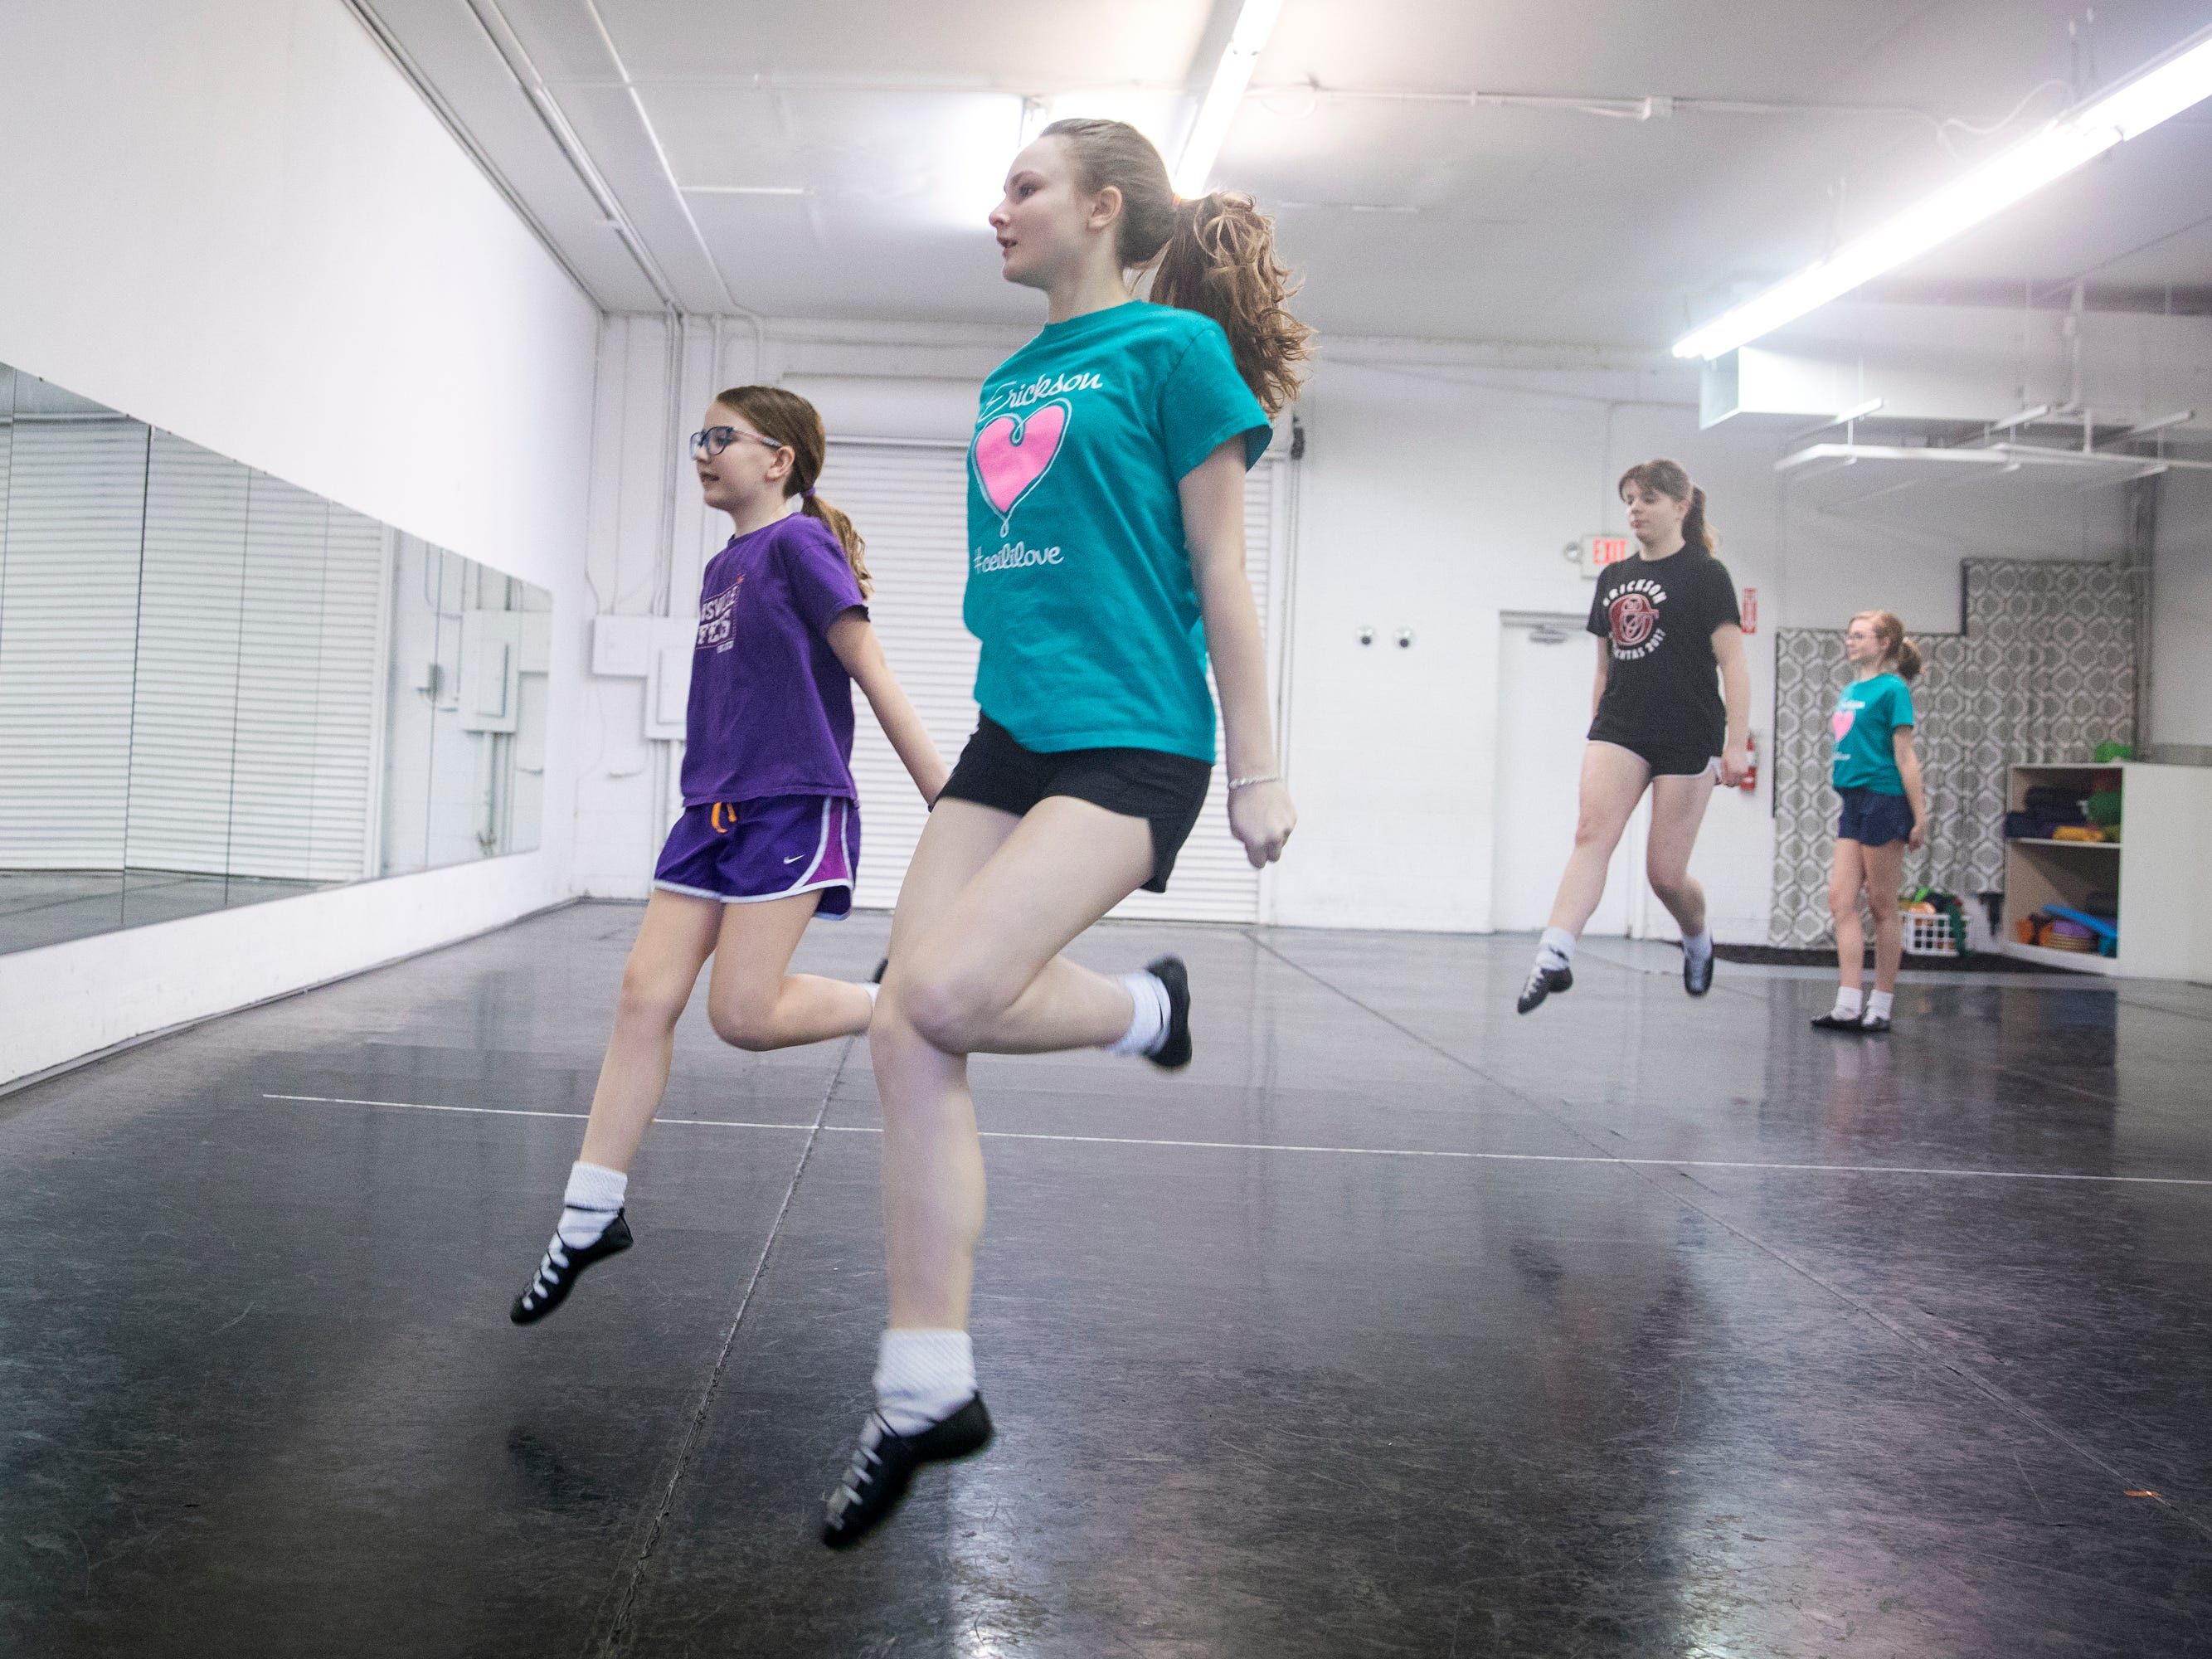 Avery Barter, 13, and Erin Stroup, 10, practice for the 2019 Cincinnati St. Patrick's Day Parade at the Erickson Academy of Irish Dance studio in Linwood Thursday, March 14, 2019.